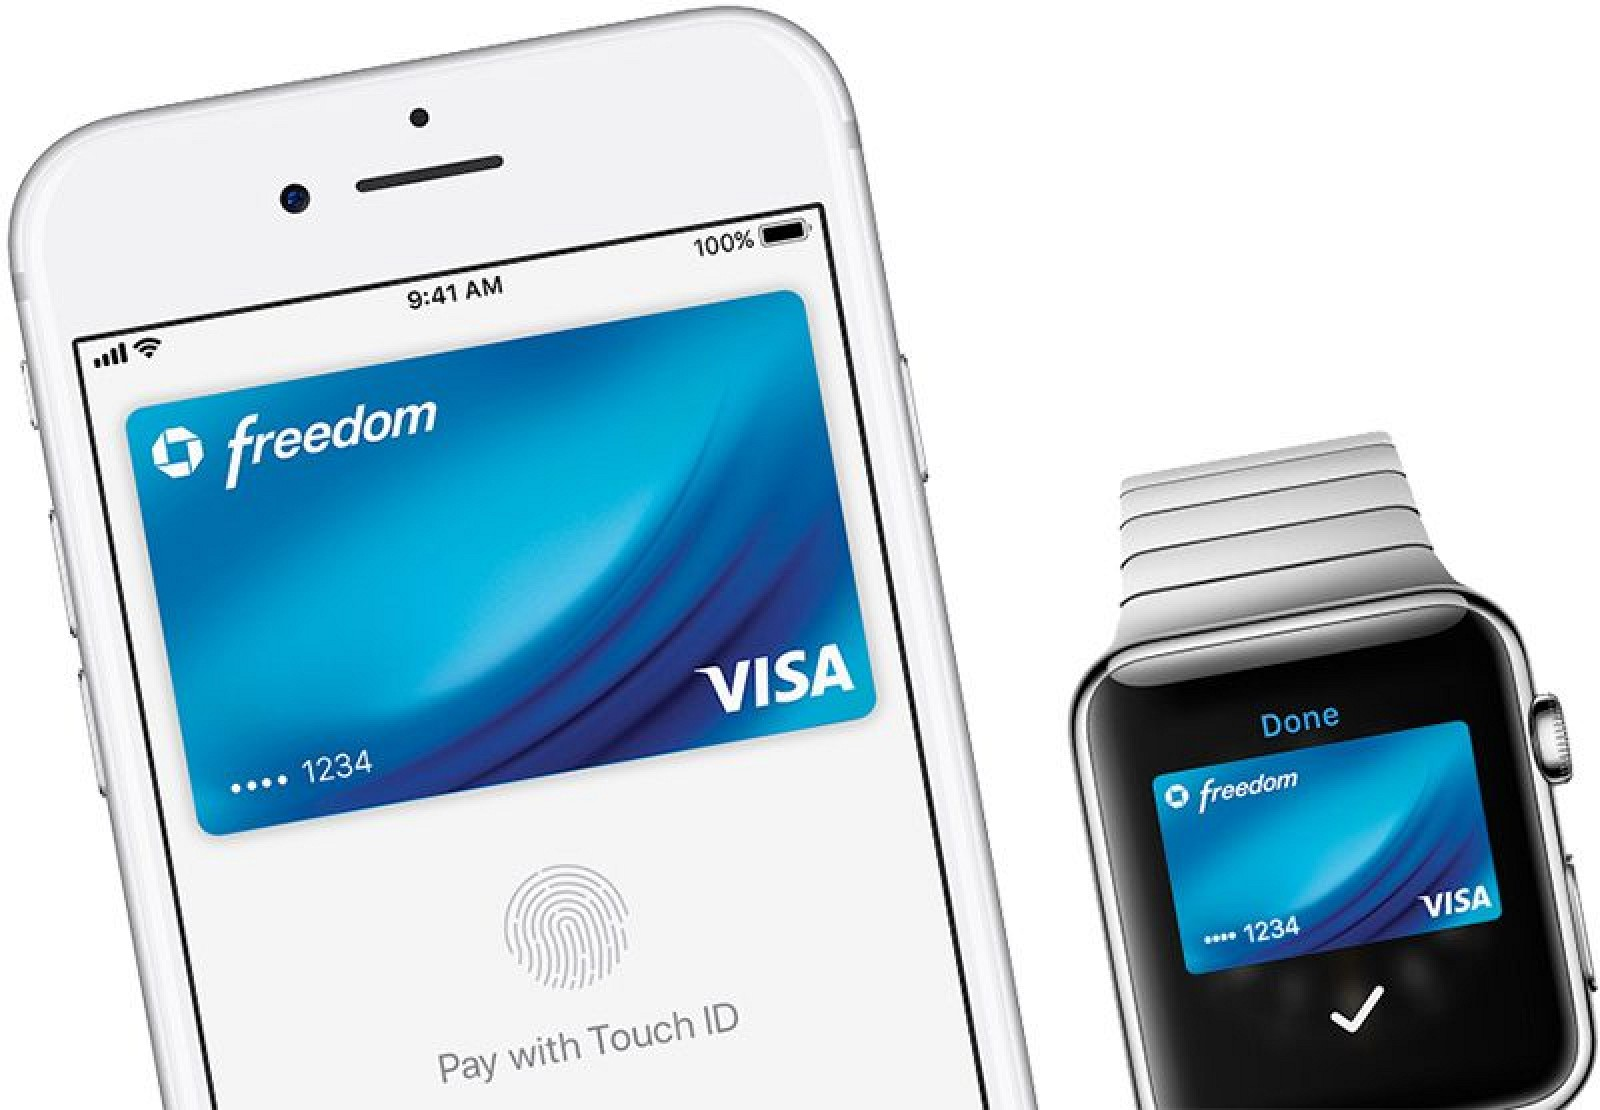 photo image Apple Pay Gains Momentum With Estimated 250 Million Users, 200% Transaction Growth Predicted Next Year